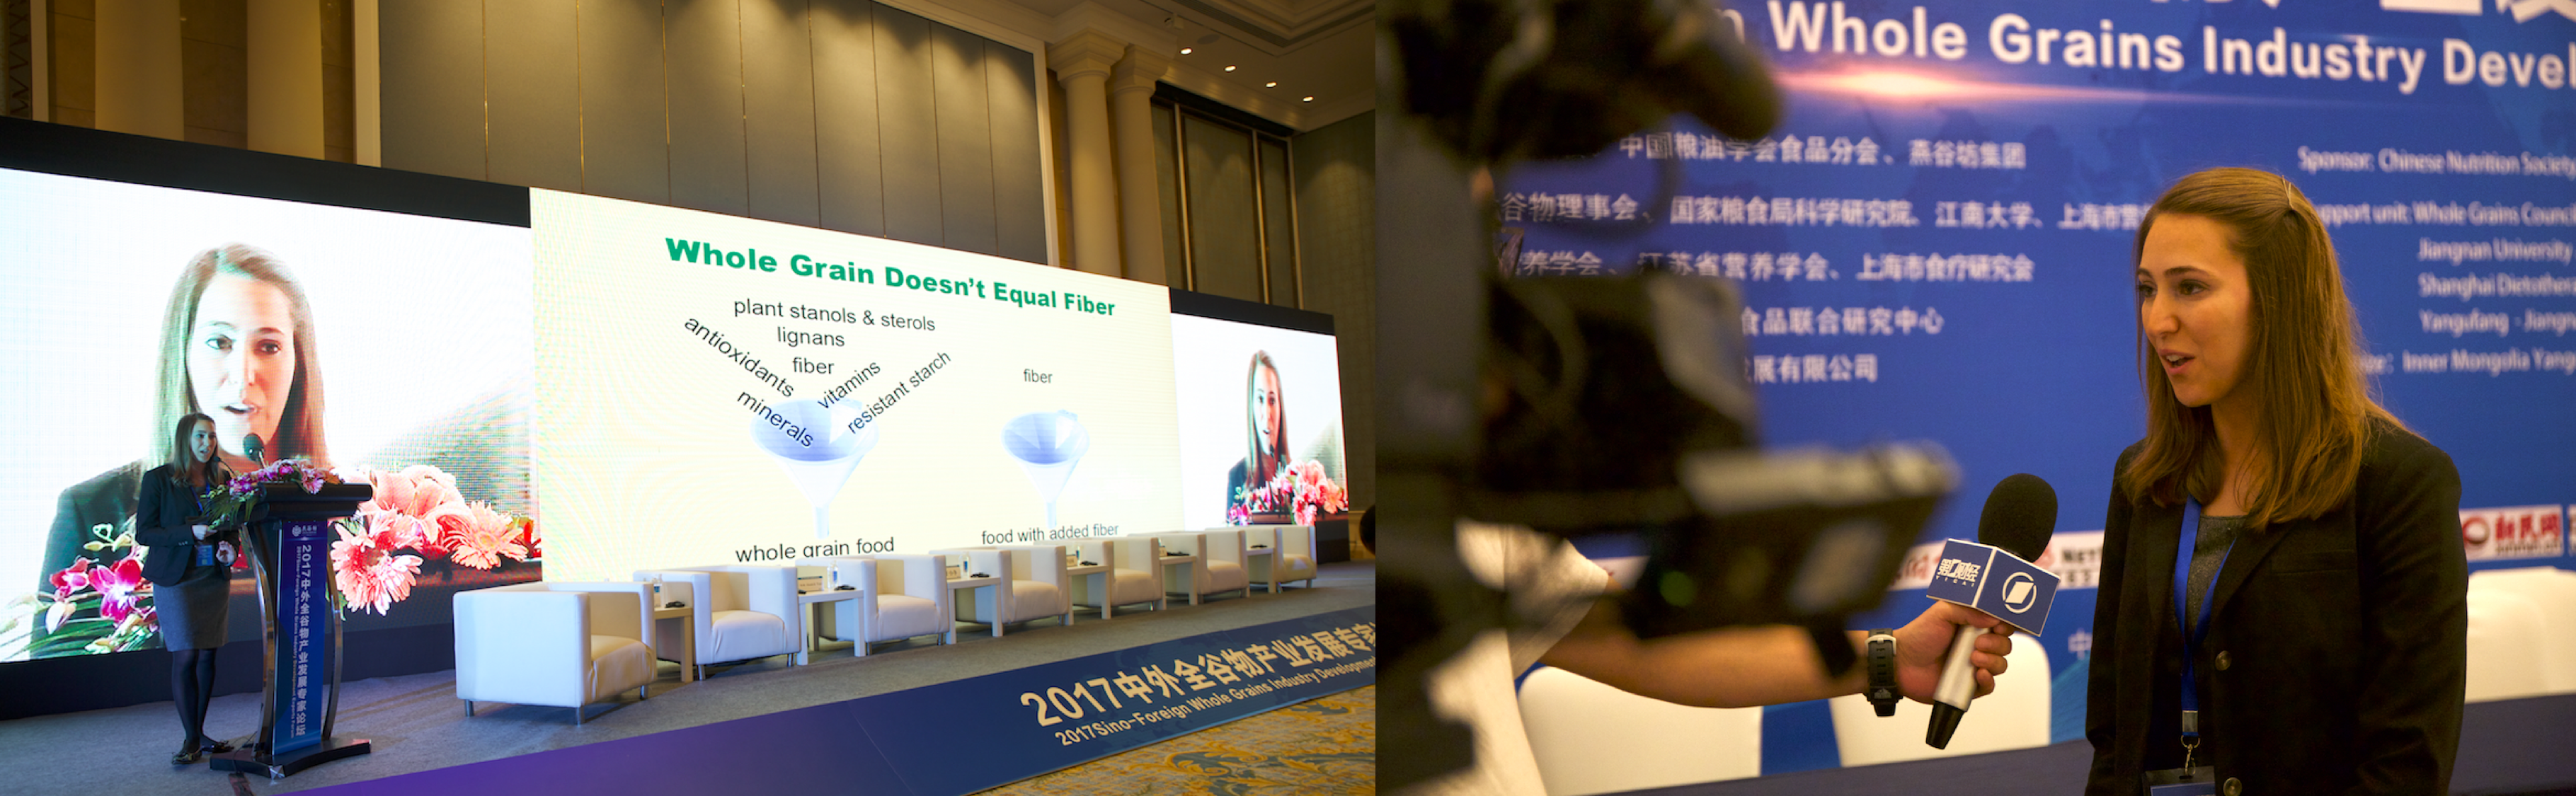 Whole Grains Council presentation in Shanghai, China